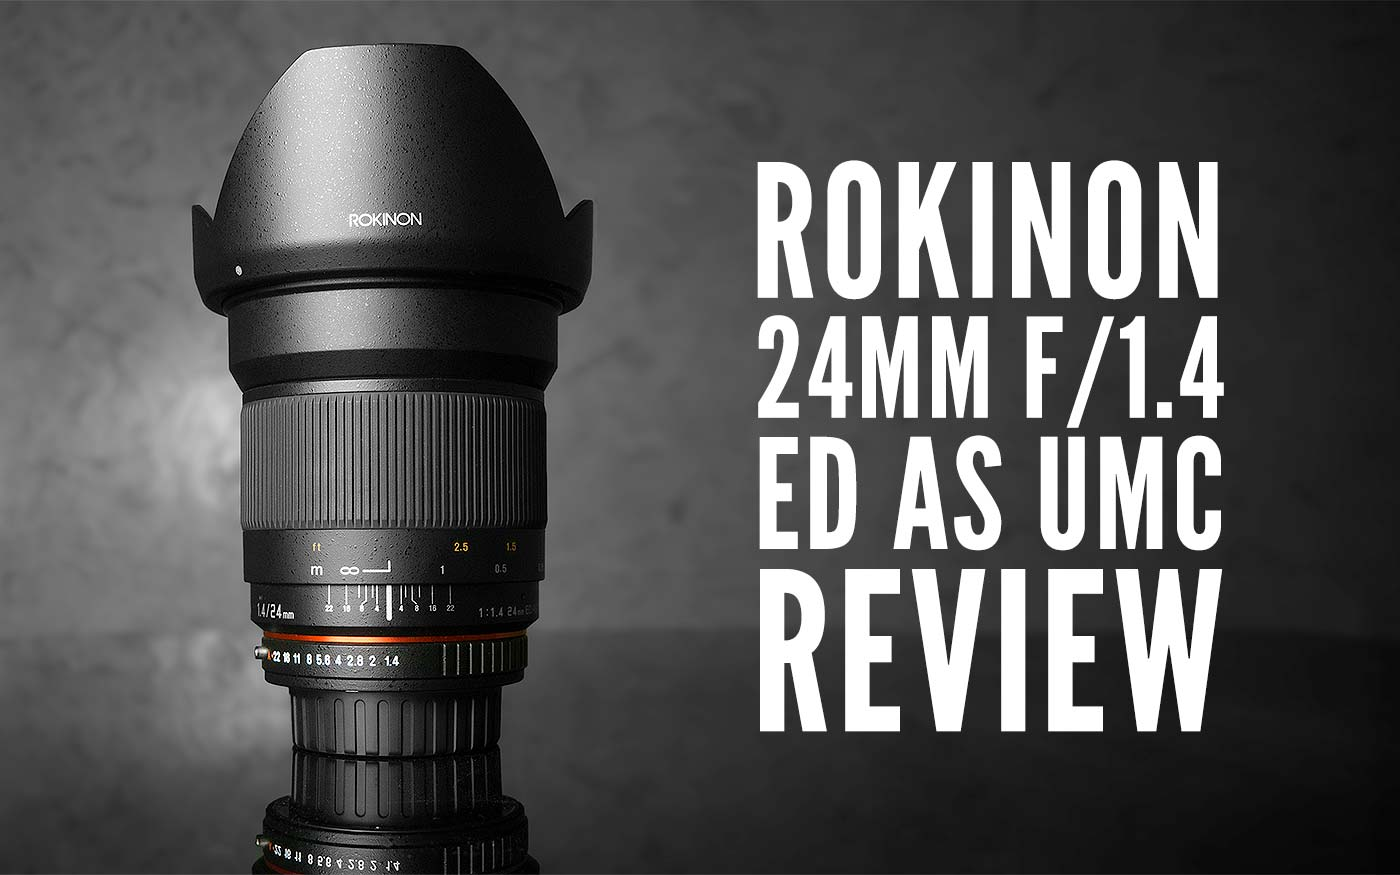 Rokinon 24mm F 14 Ed As Umc Review Lonely Speck Samyang For Sony E Af 50mm Fe Posted On November 24 2014 12 2018 By Ian Norman